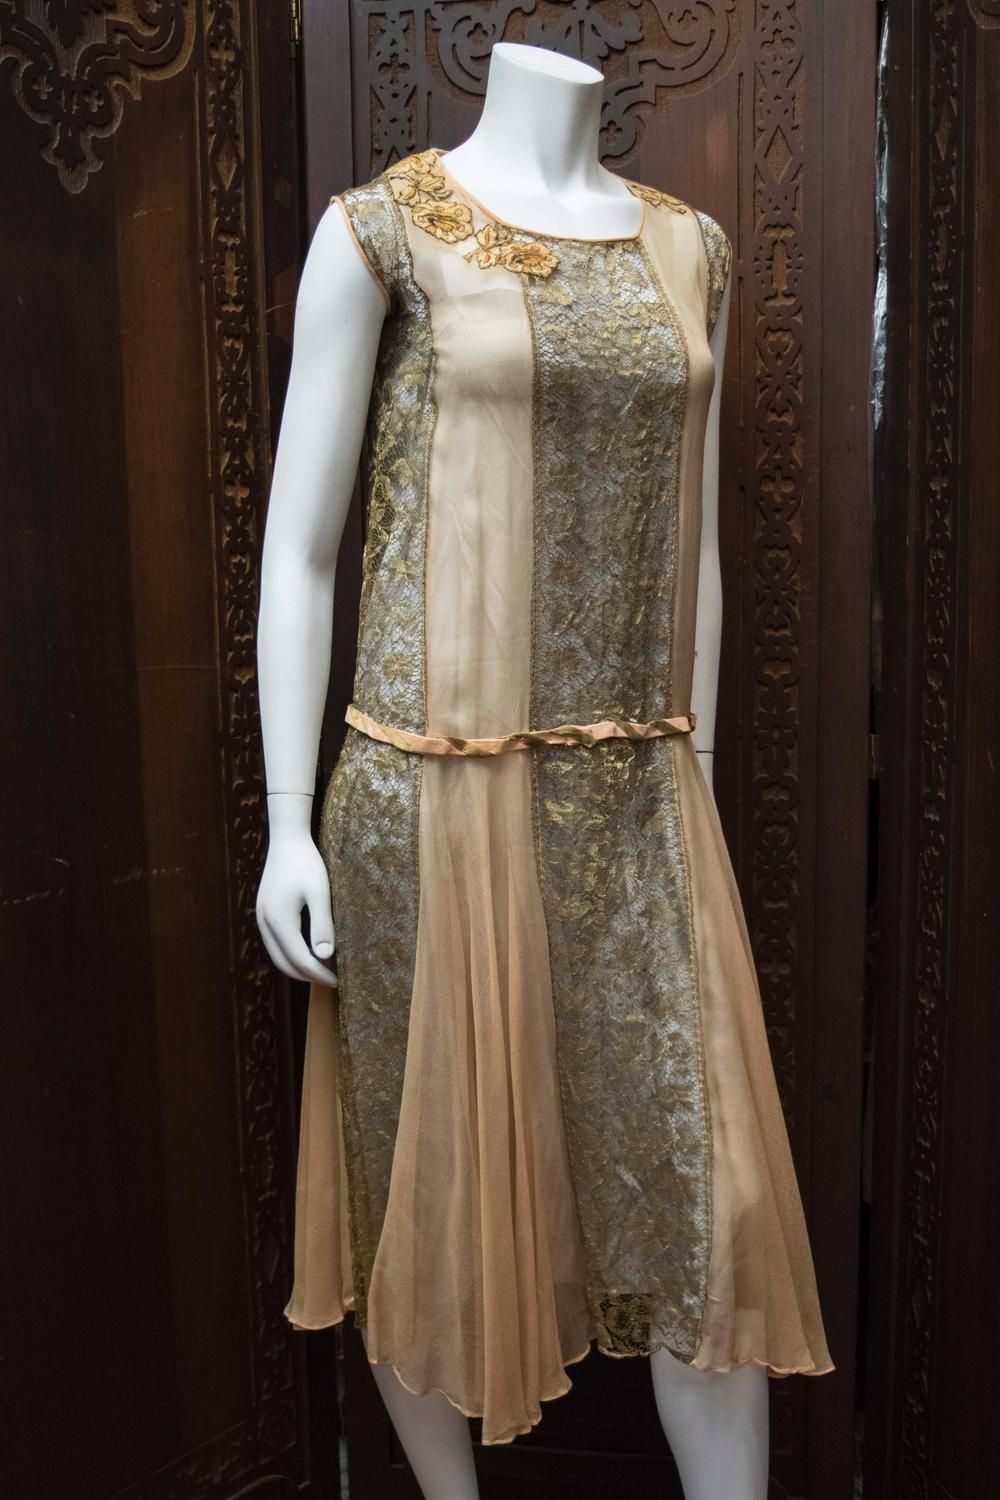 d11ae92821 1920s Lace and Silk Georgette Dress Early 1920s dress made from gold lamé  lace threads featuring a peach silk georgette inserts